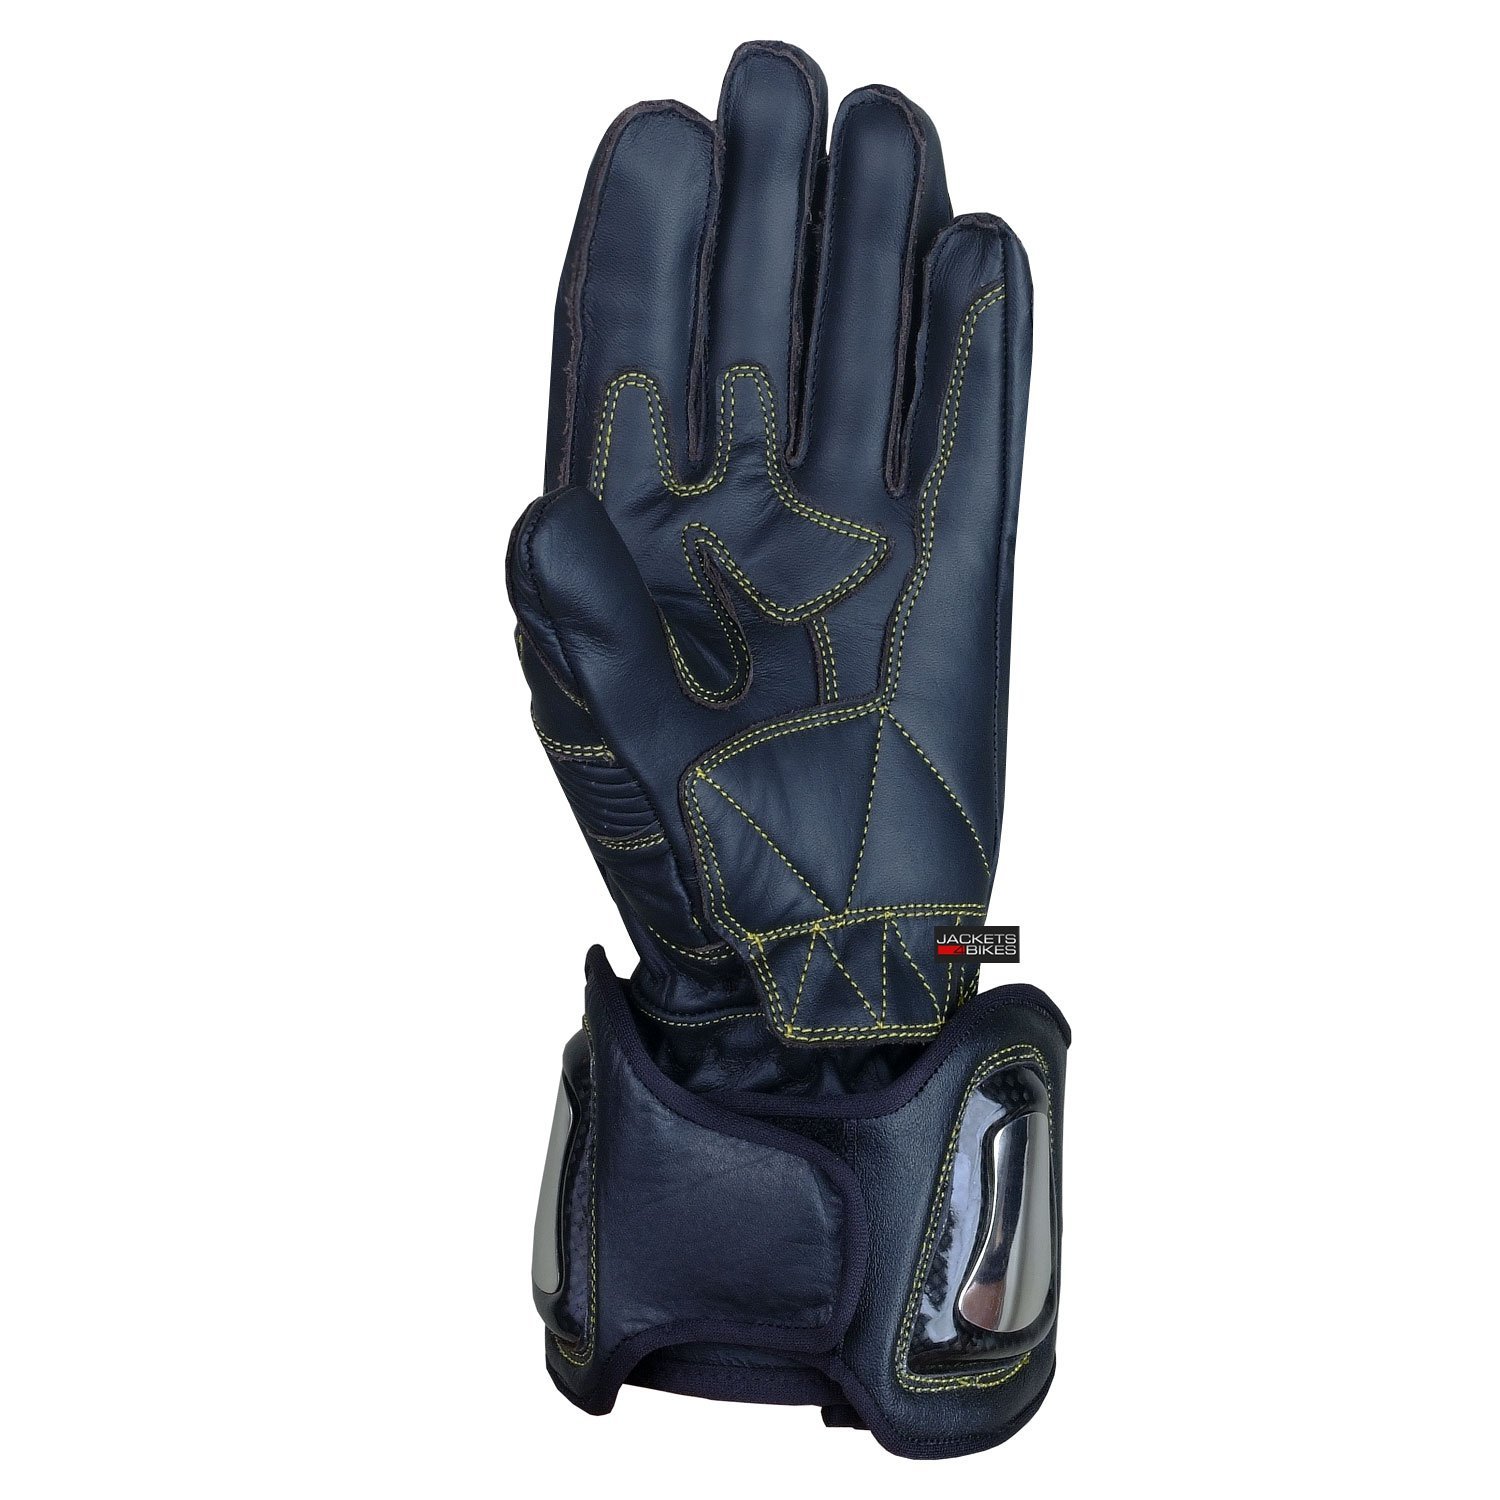 Motorcycle gloves metal - Amazon Com Excalibur Black Leather Carbon Steel Armor Motorcycle Gloves Size S Clothing